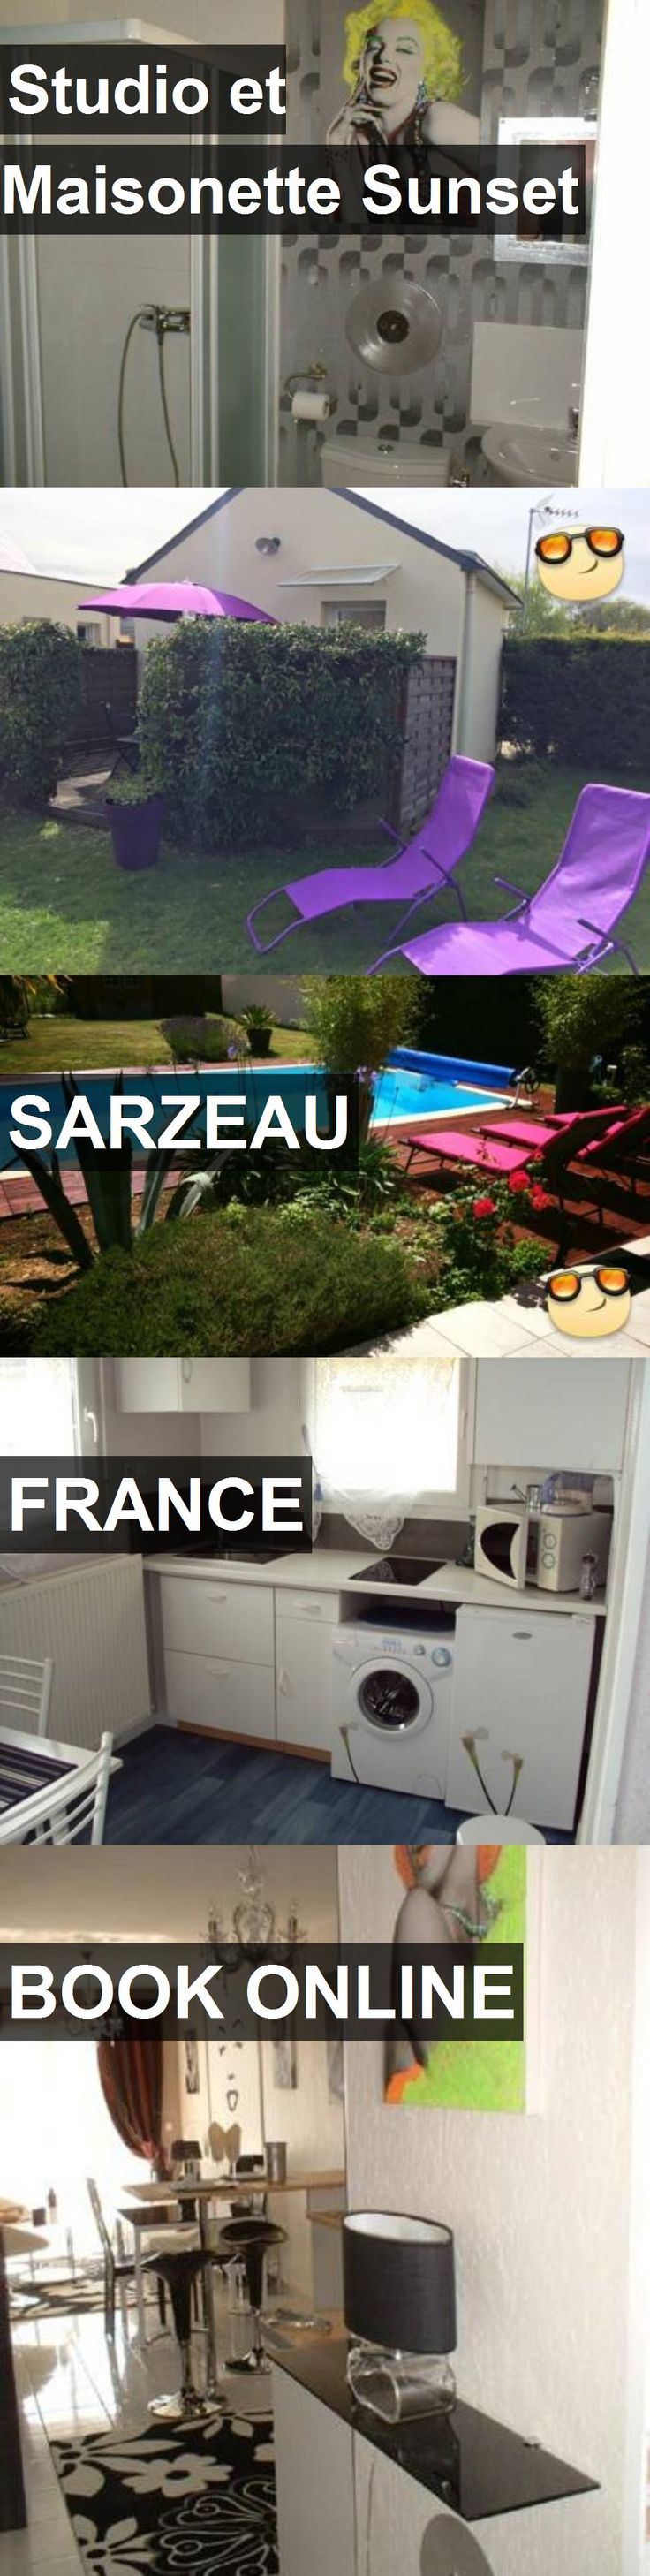 Hotel Studio et Maisonette Sunset in Sarzeau, France. For more information, photos, reviews and best prices please follow the link. #France #Sarzeau #StudioetMaisonetteSunset #hotel #travel #vacation